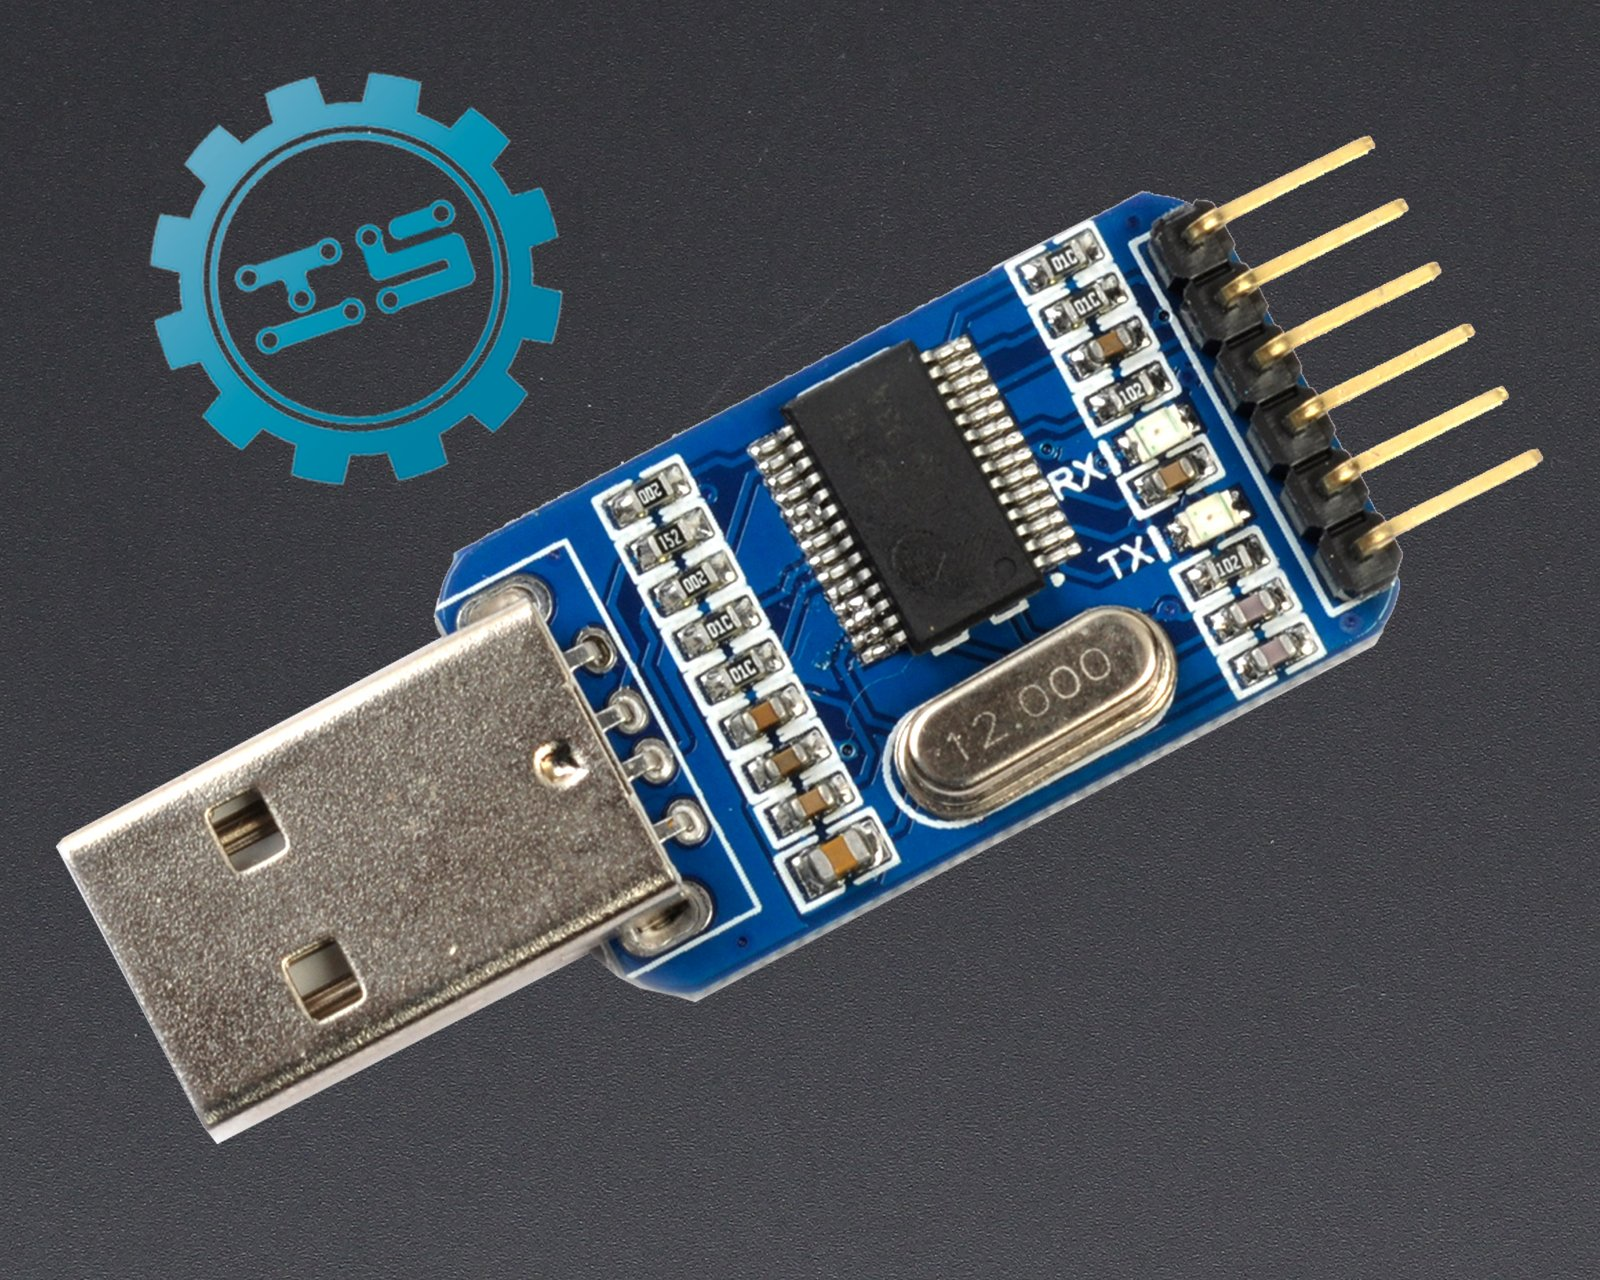 Usb adapter for arduino from icstation on tindie